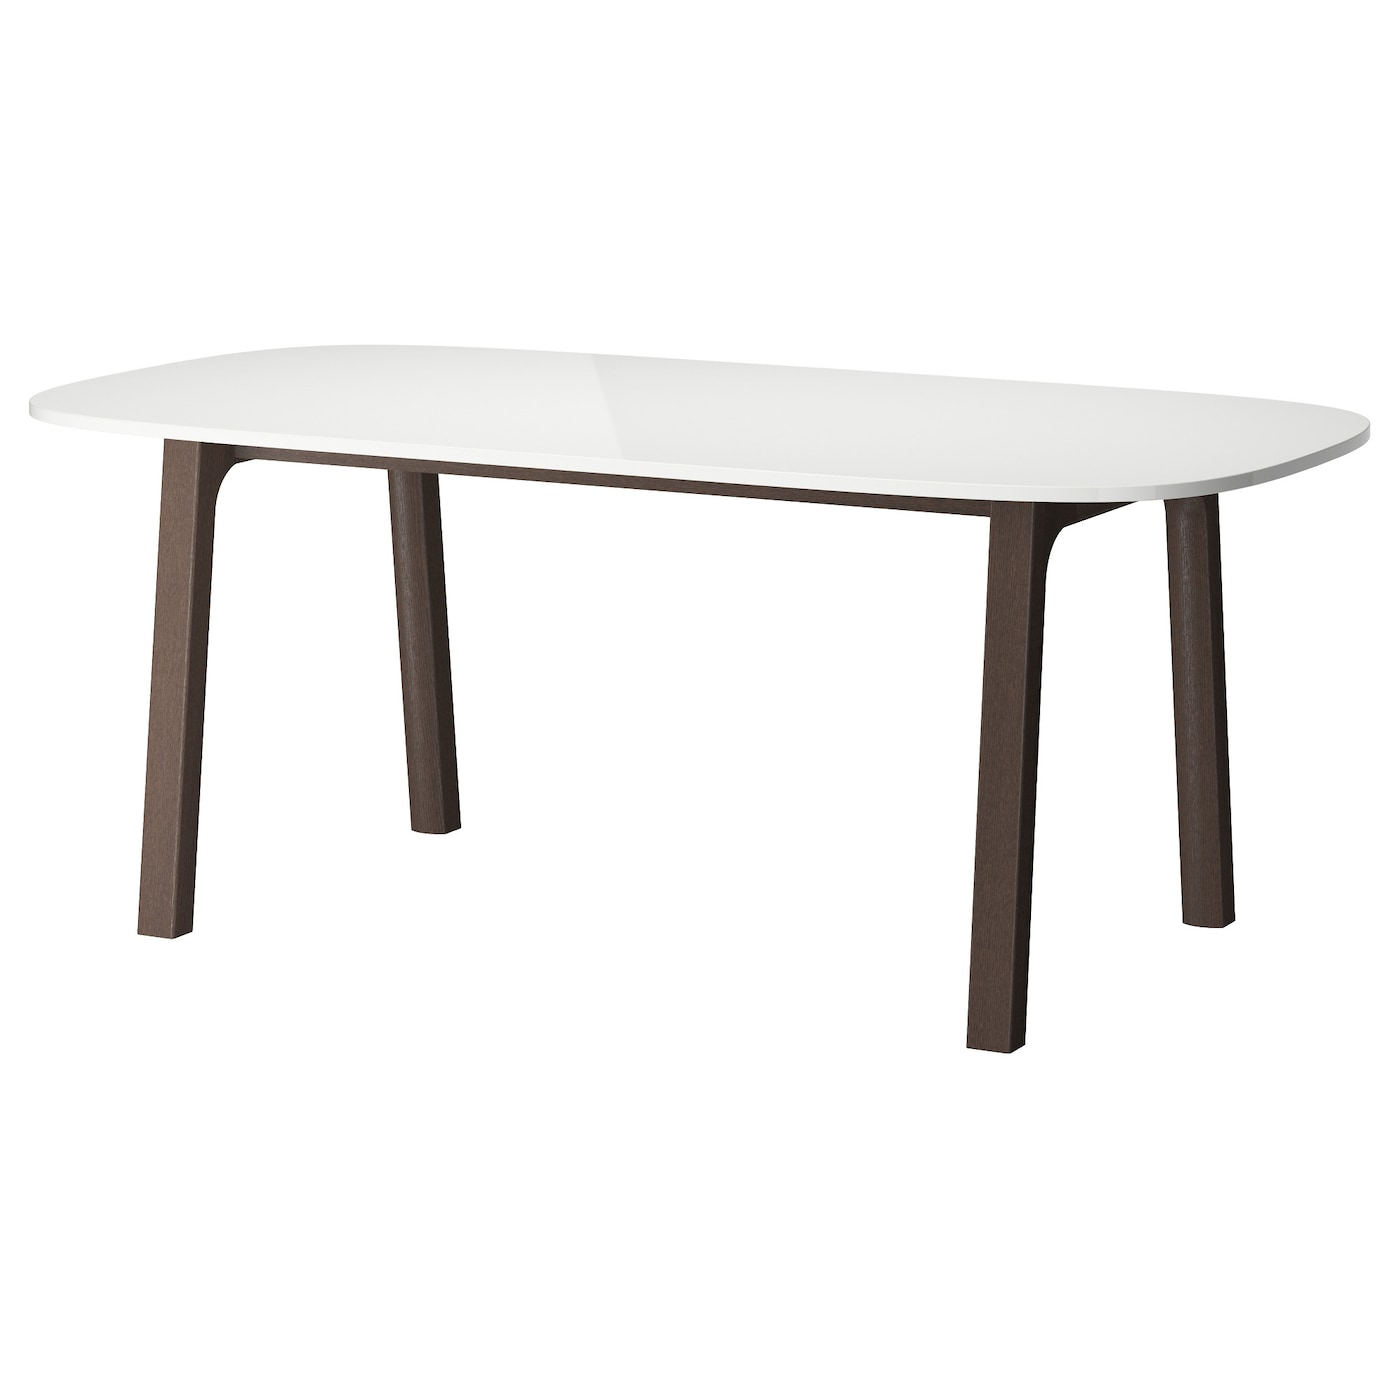 Oppeby table white v stan dark brown 185x90 cm ikea for Table 4 personnes ikea